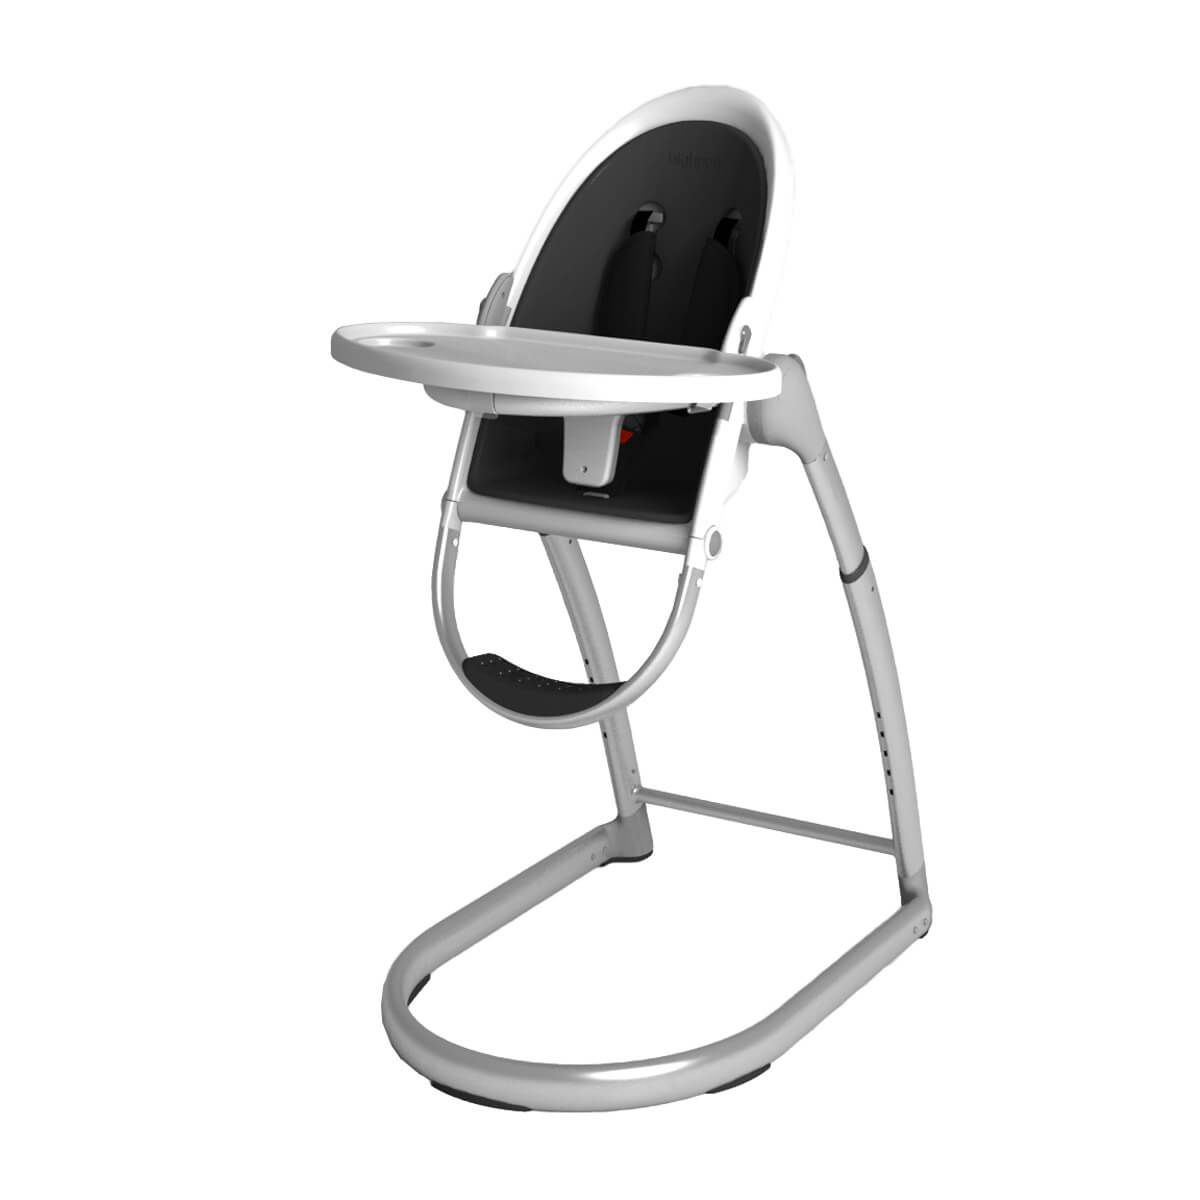 Charmant 55+ Bar Stool Baby High Chair   Modern Home Furniture Check More At Http: